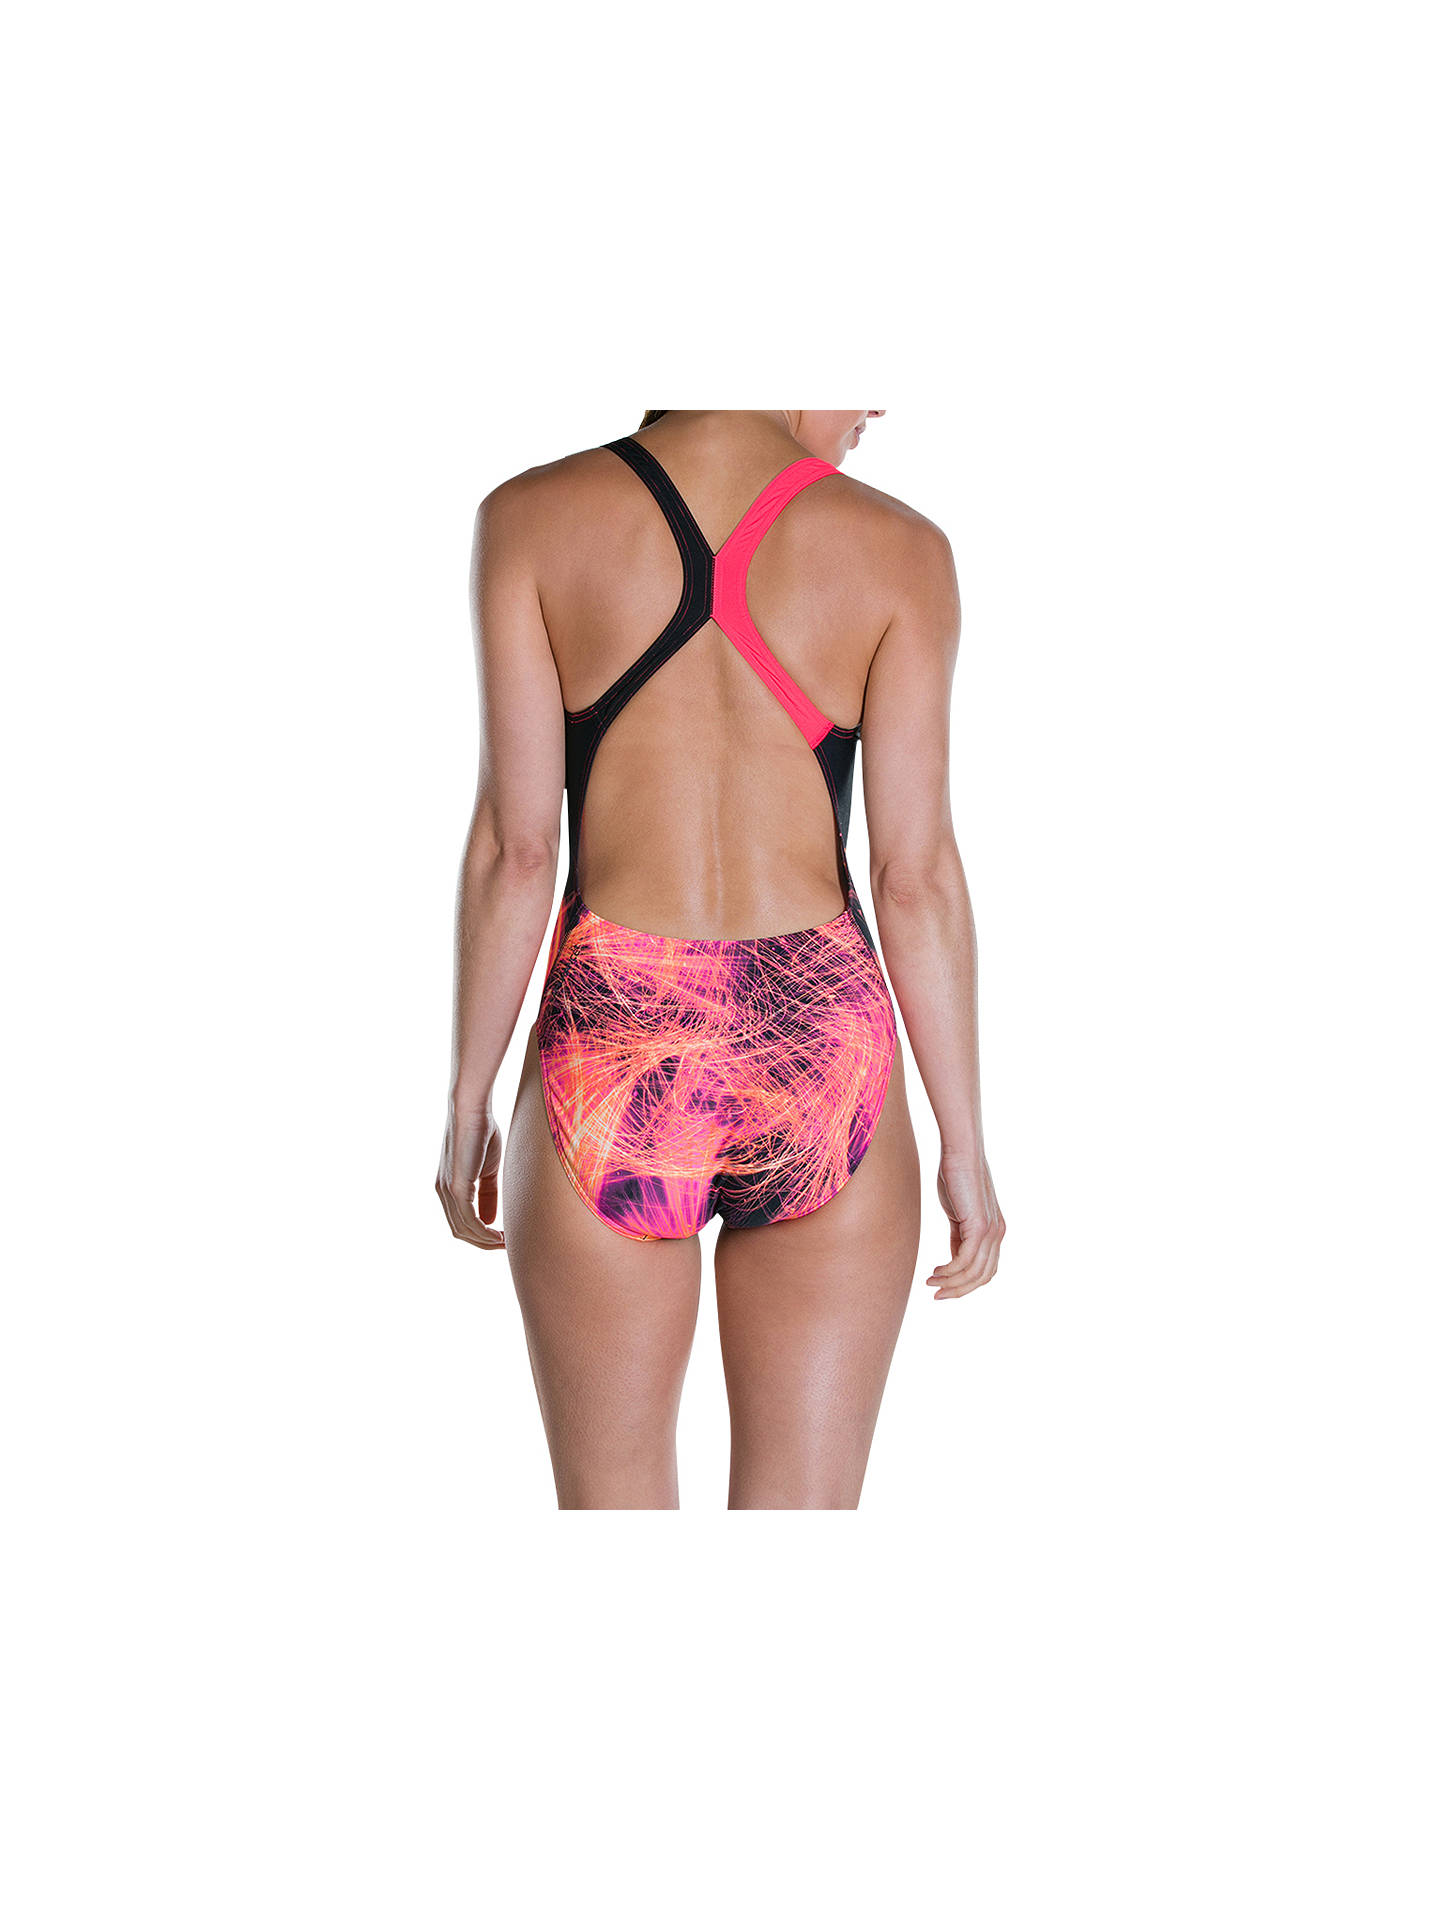 BuySpeedo HeatShine Placement Digital Powerback Swimsuit, Heatshine Black/Post It Pink, 40 Online at johnlewis.com